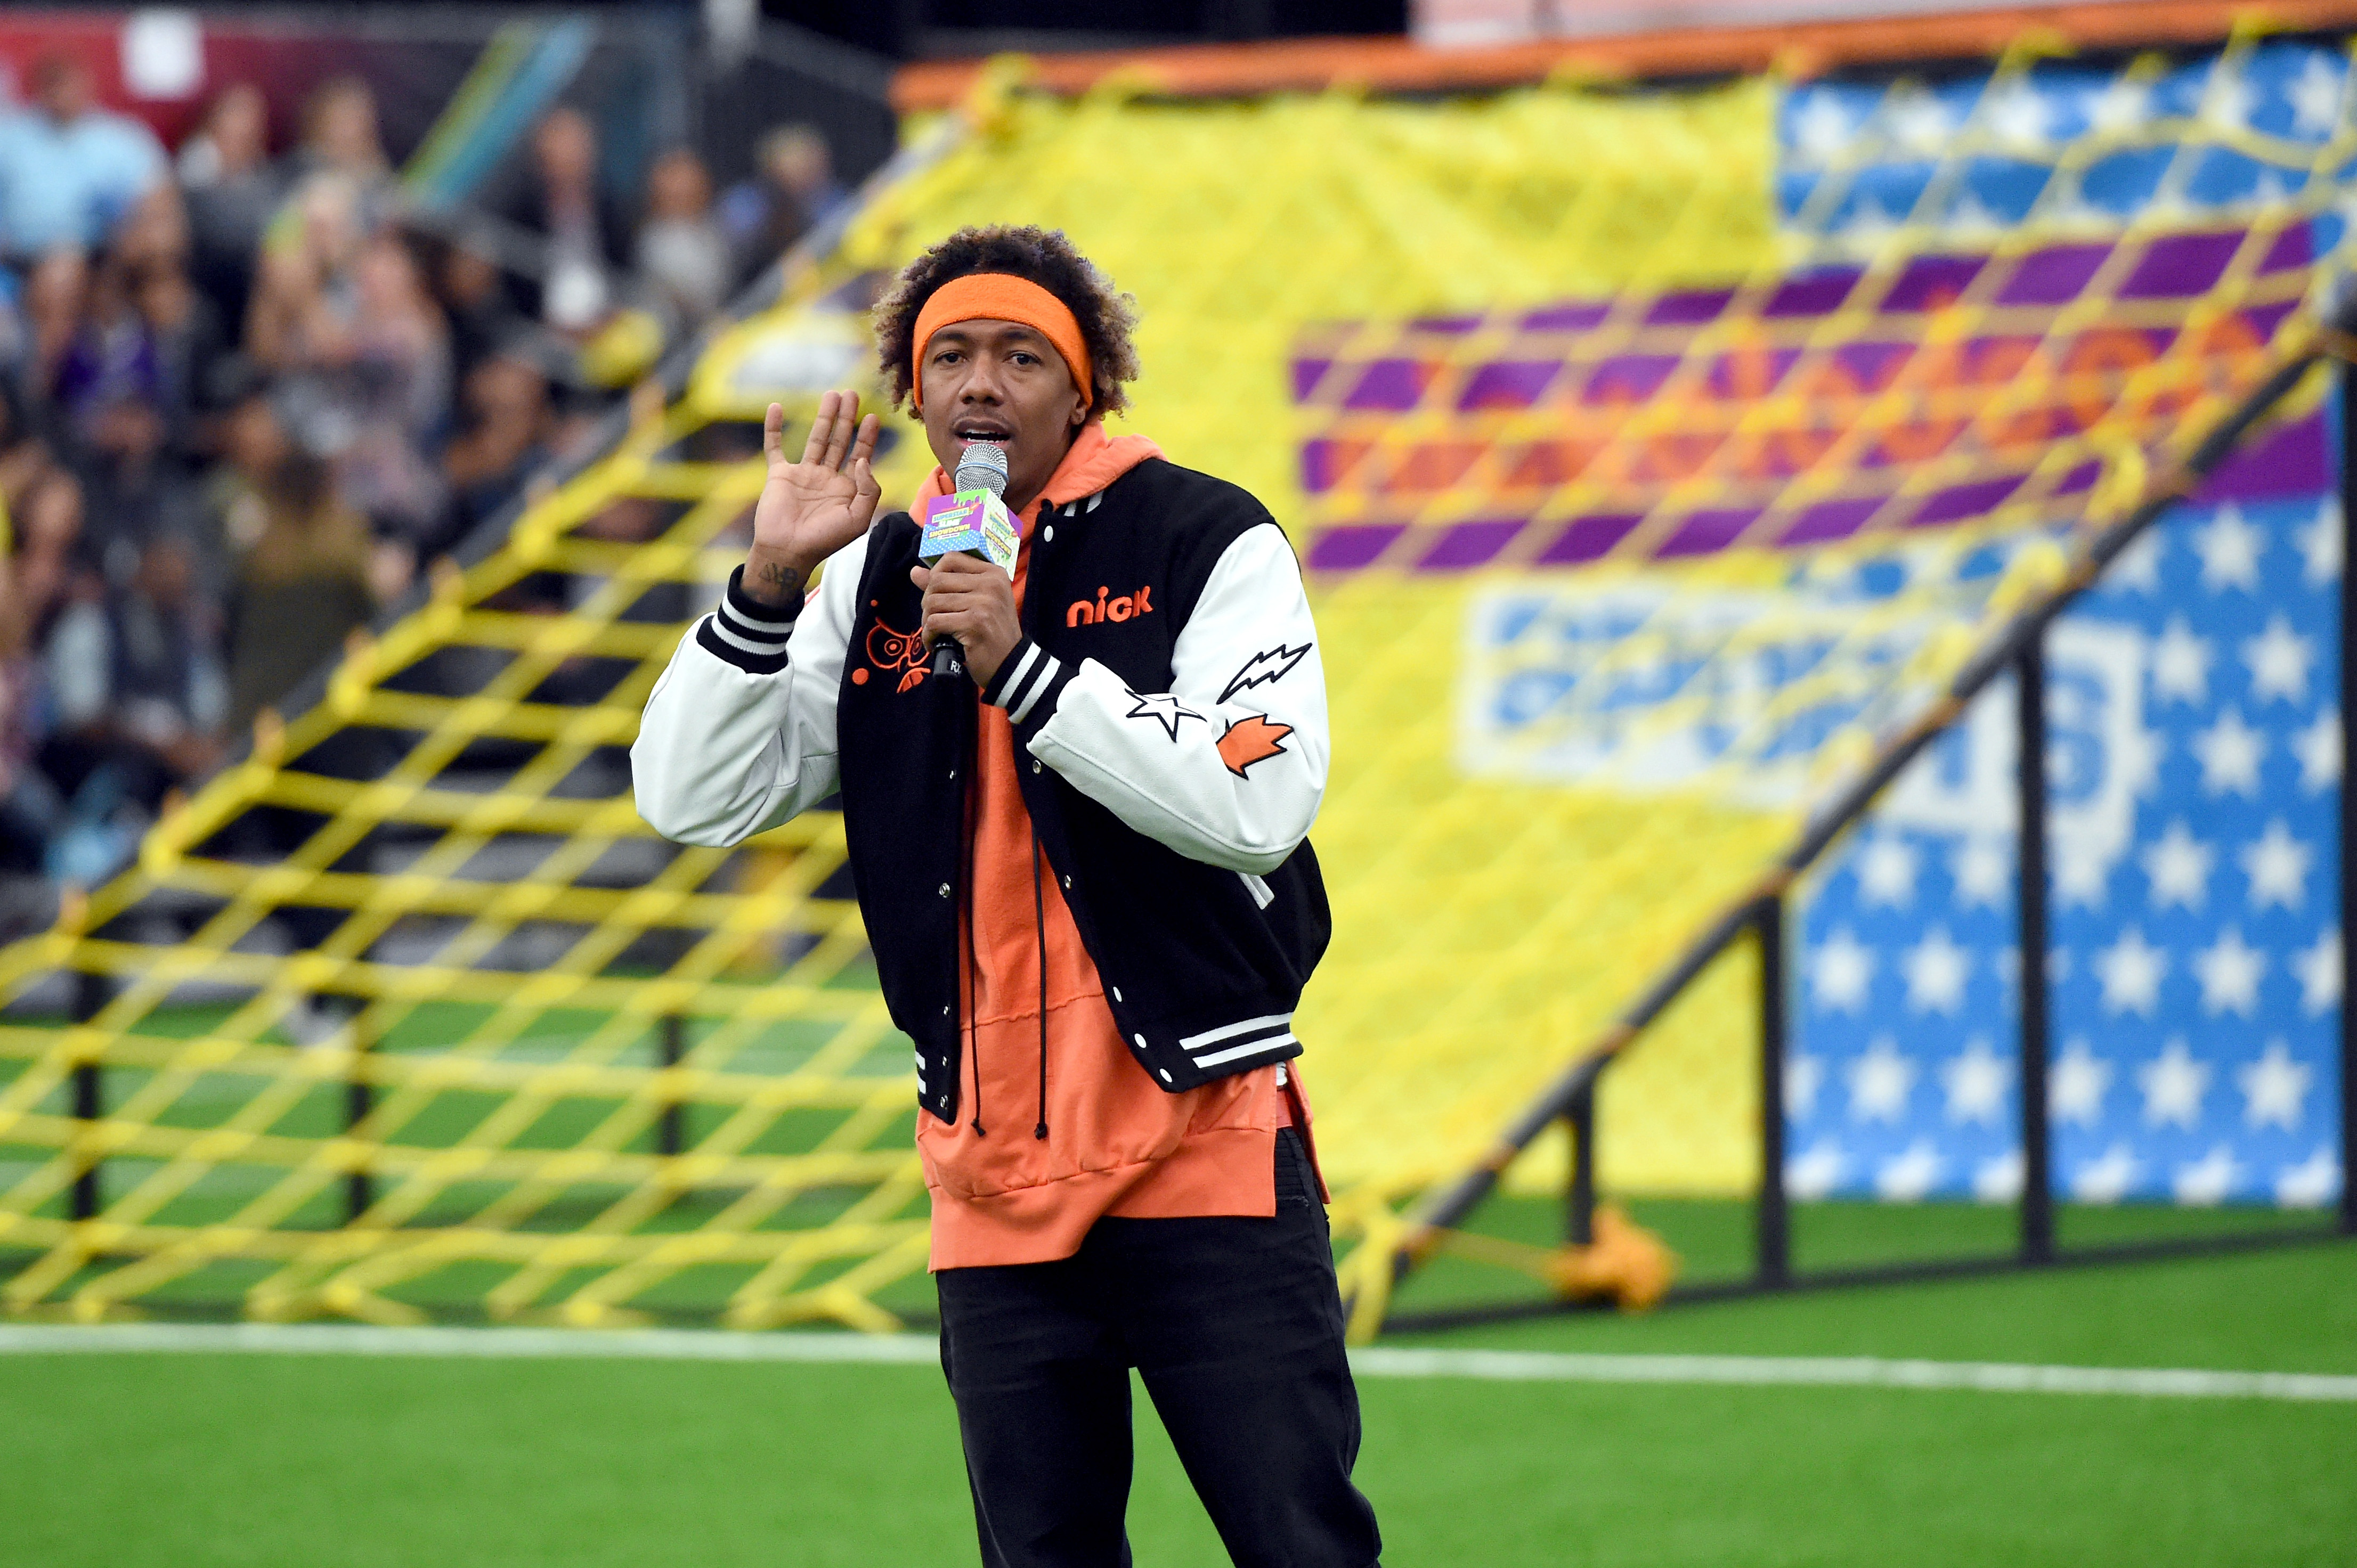 Nick Cannon at Nickelodeon's Superstar Slime Showdown at the Super Bowl. (Photo by Kevin Winter/Getty Images for Nickelodeon )